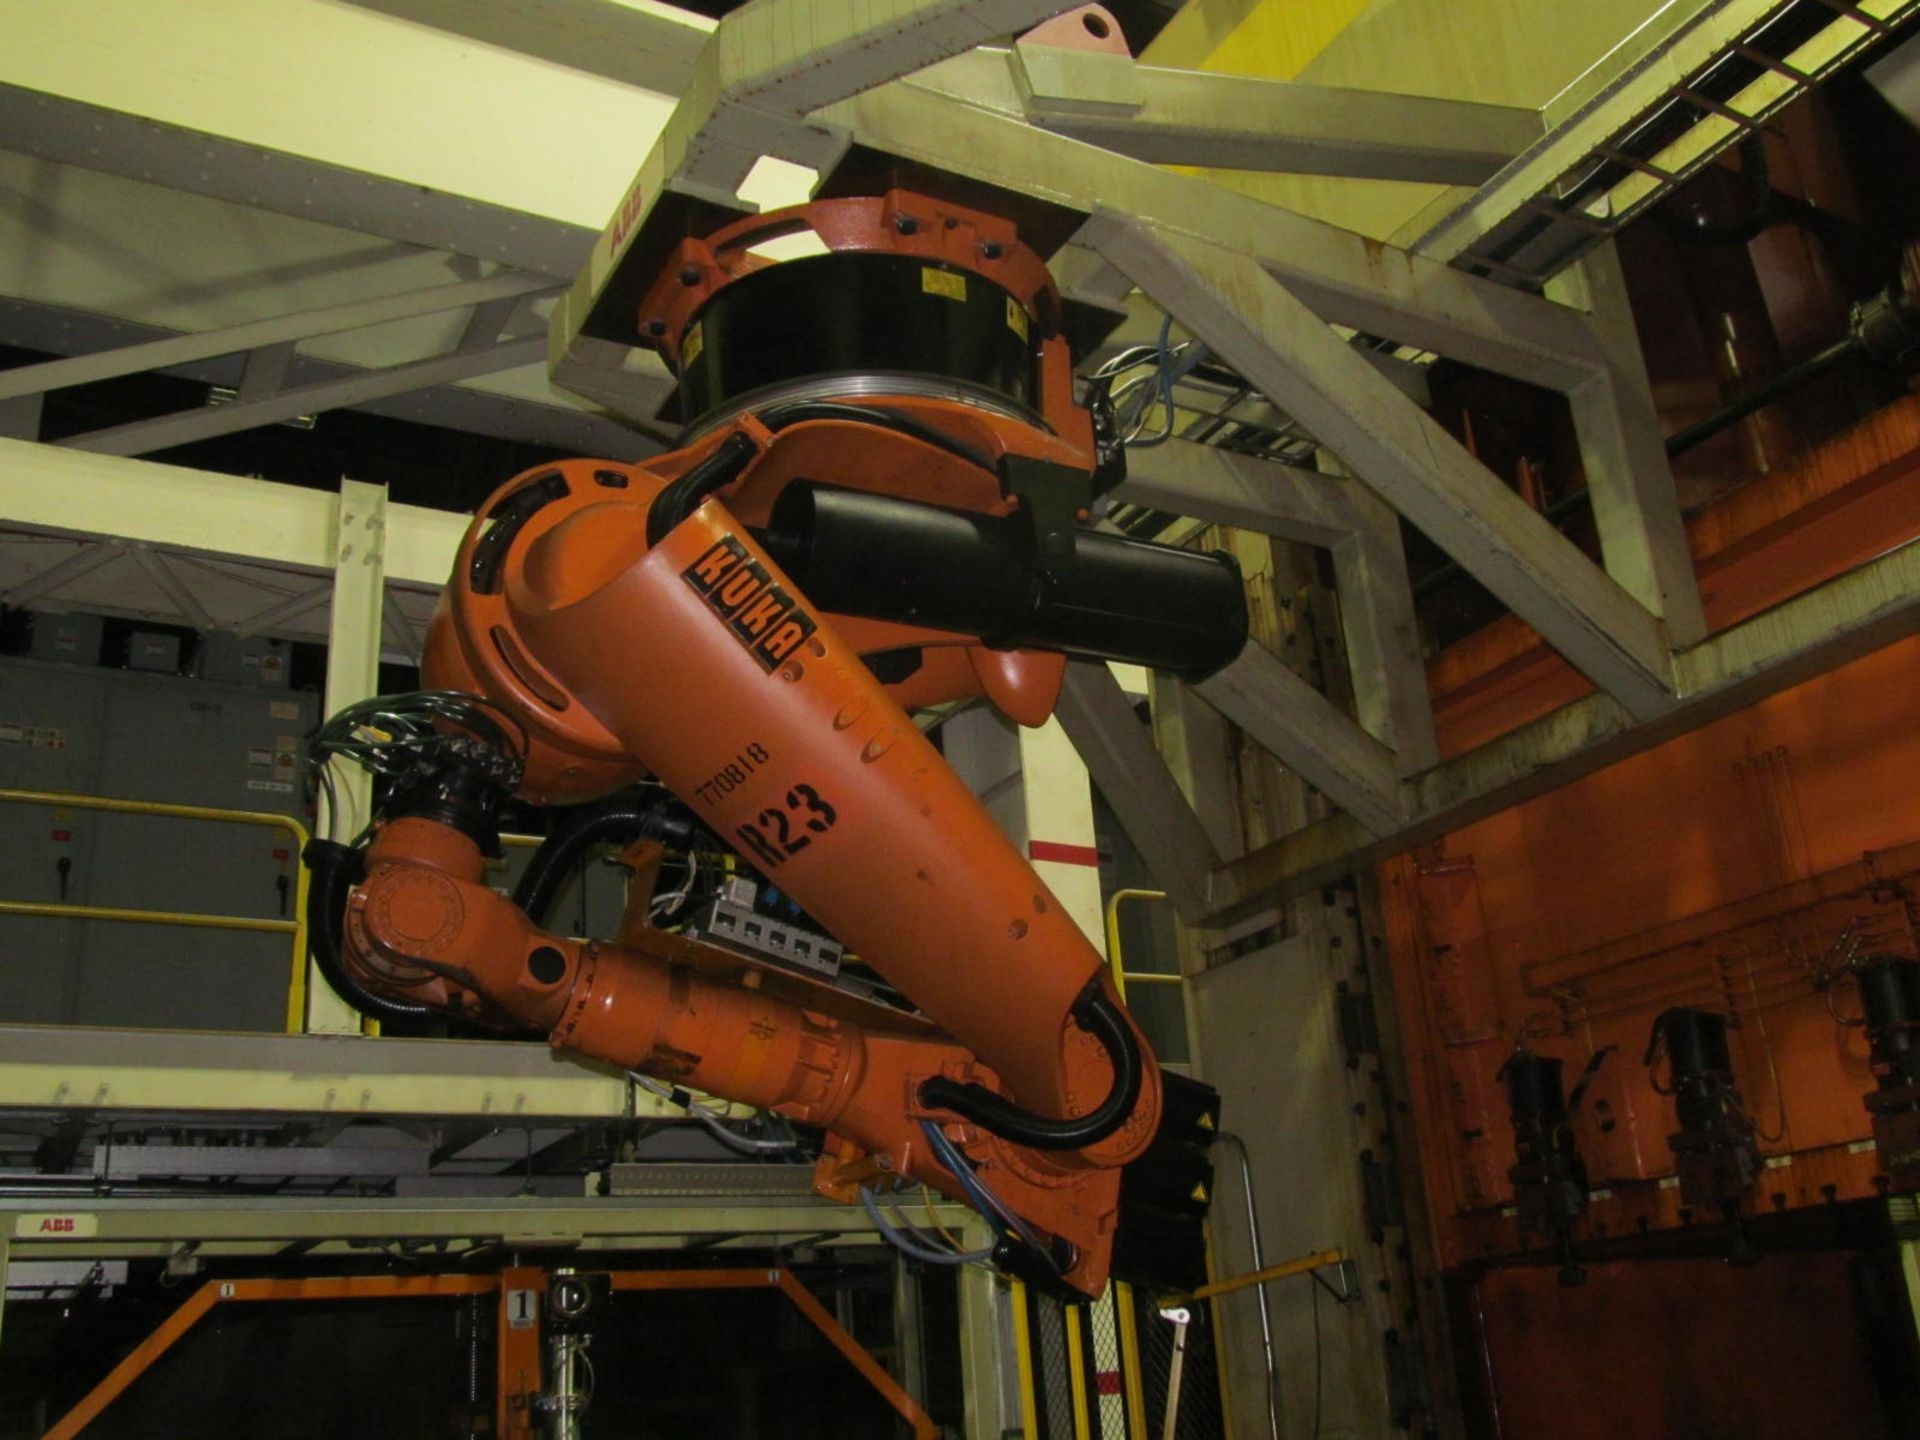 Lot 9 - 6-AXIS KUKA TRANSFER ROBOT w/ CONTROL & TEACH PAD, *PLEASE NOTE: SUBJECT TO SELLER CONFIRMATION*